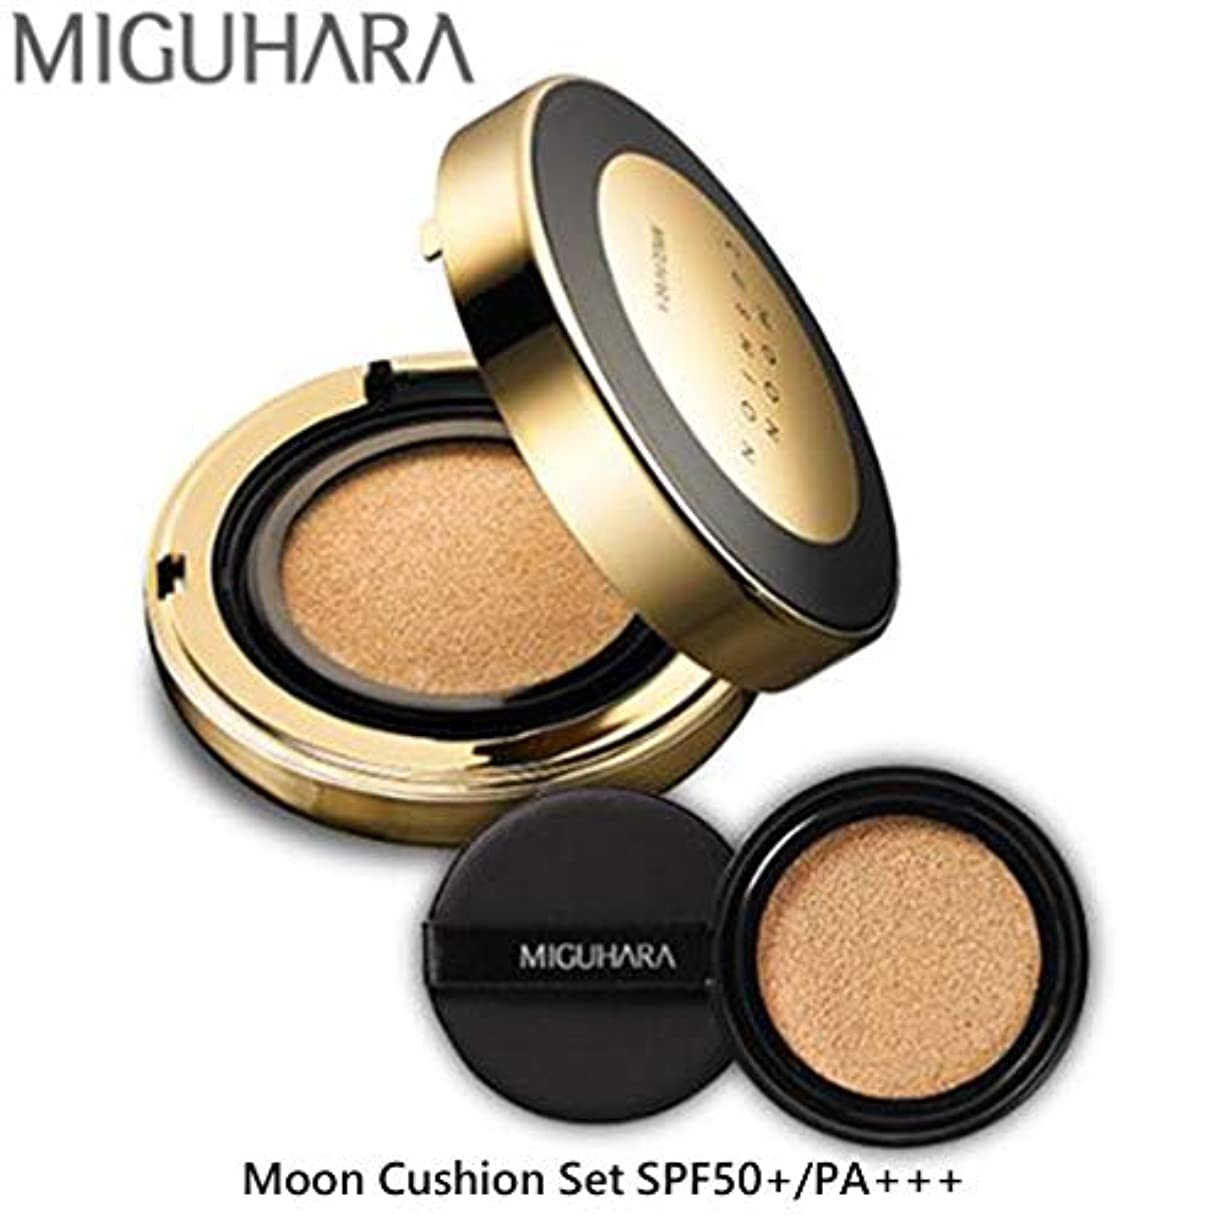 肝十分ではない肺MIGUHARA Moon Cushion Set SPF50+/PA+++ (14g+14g)